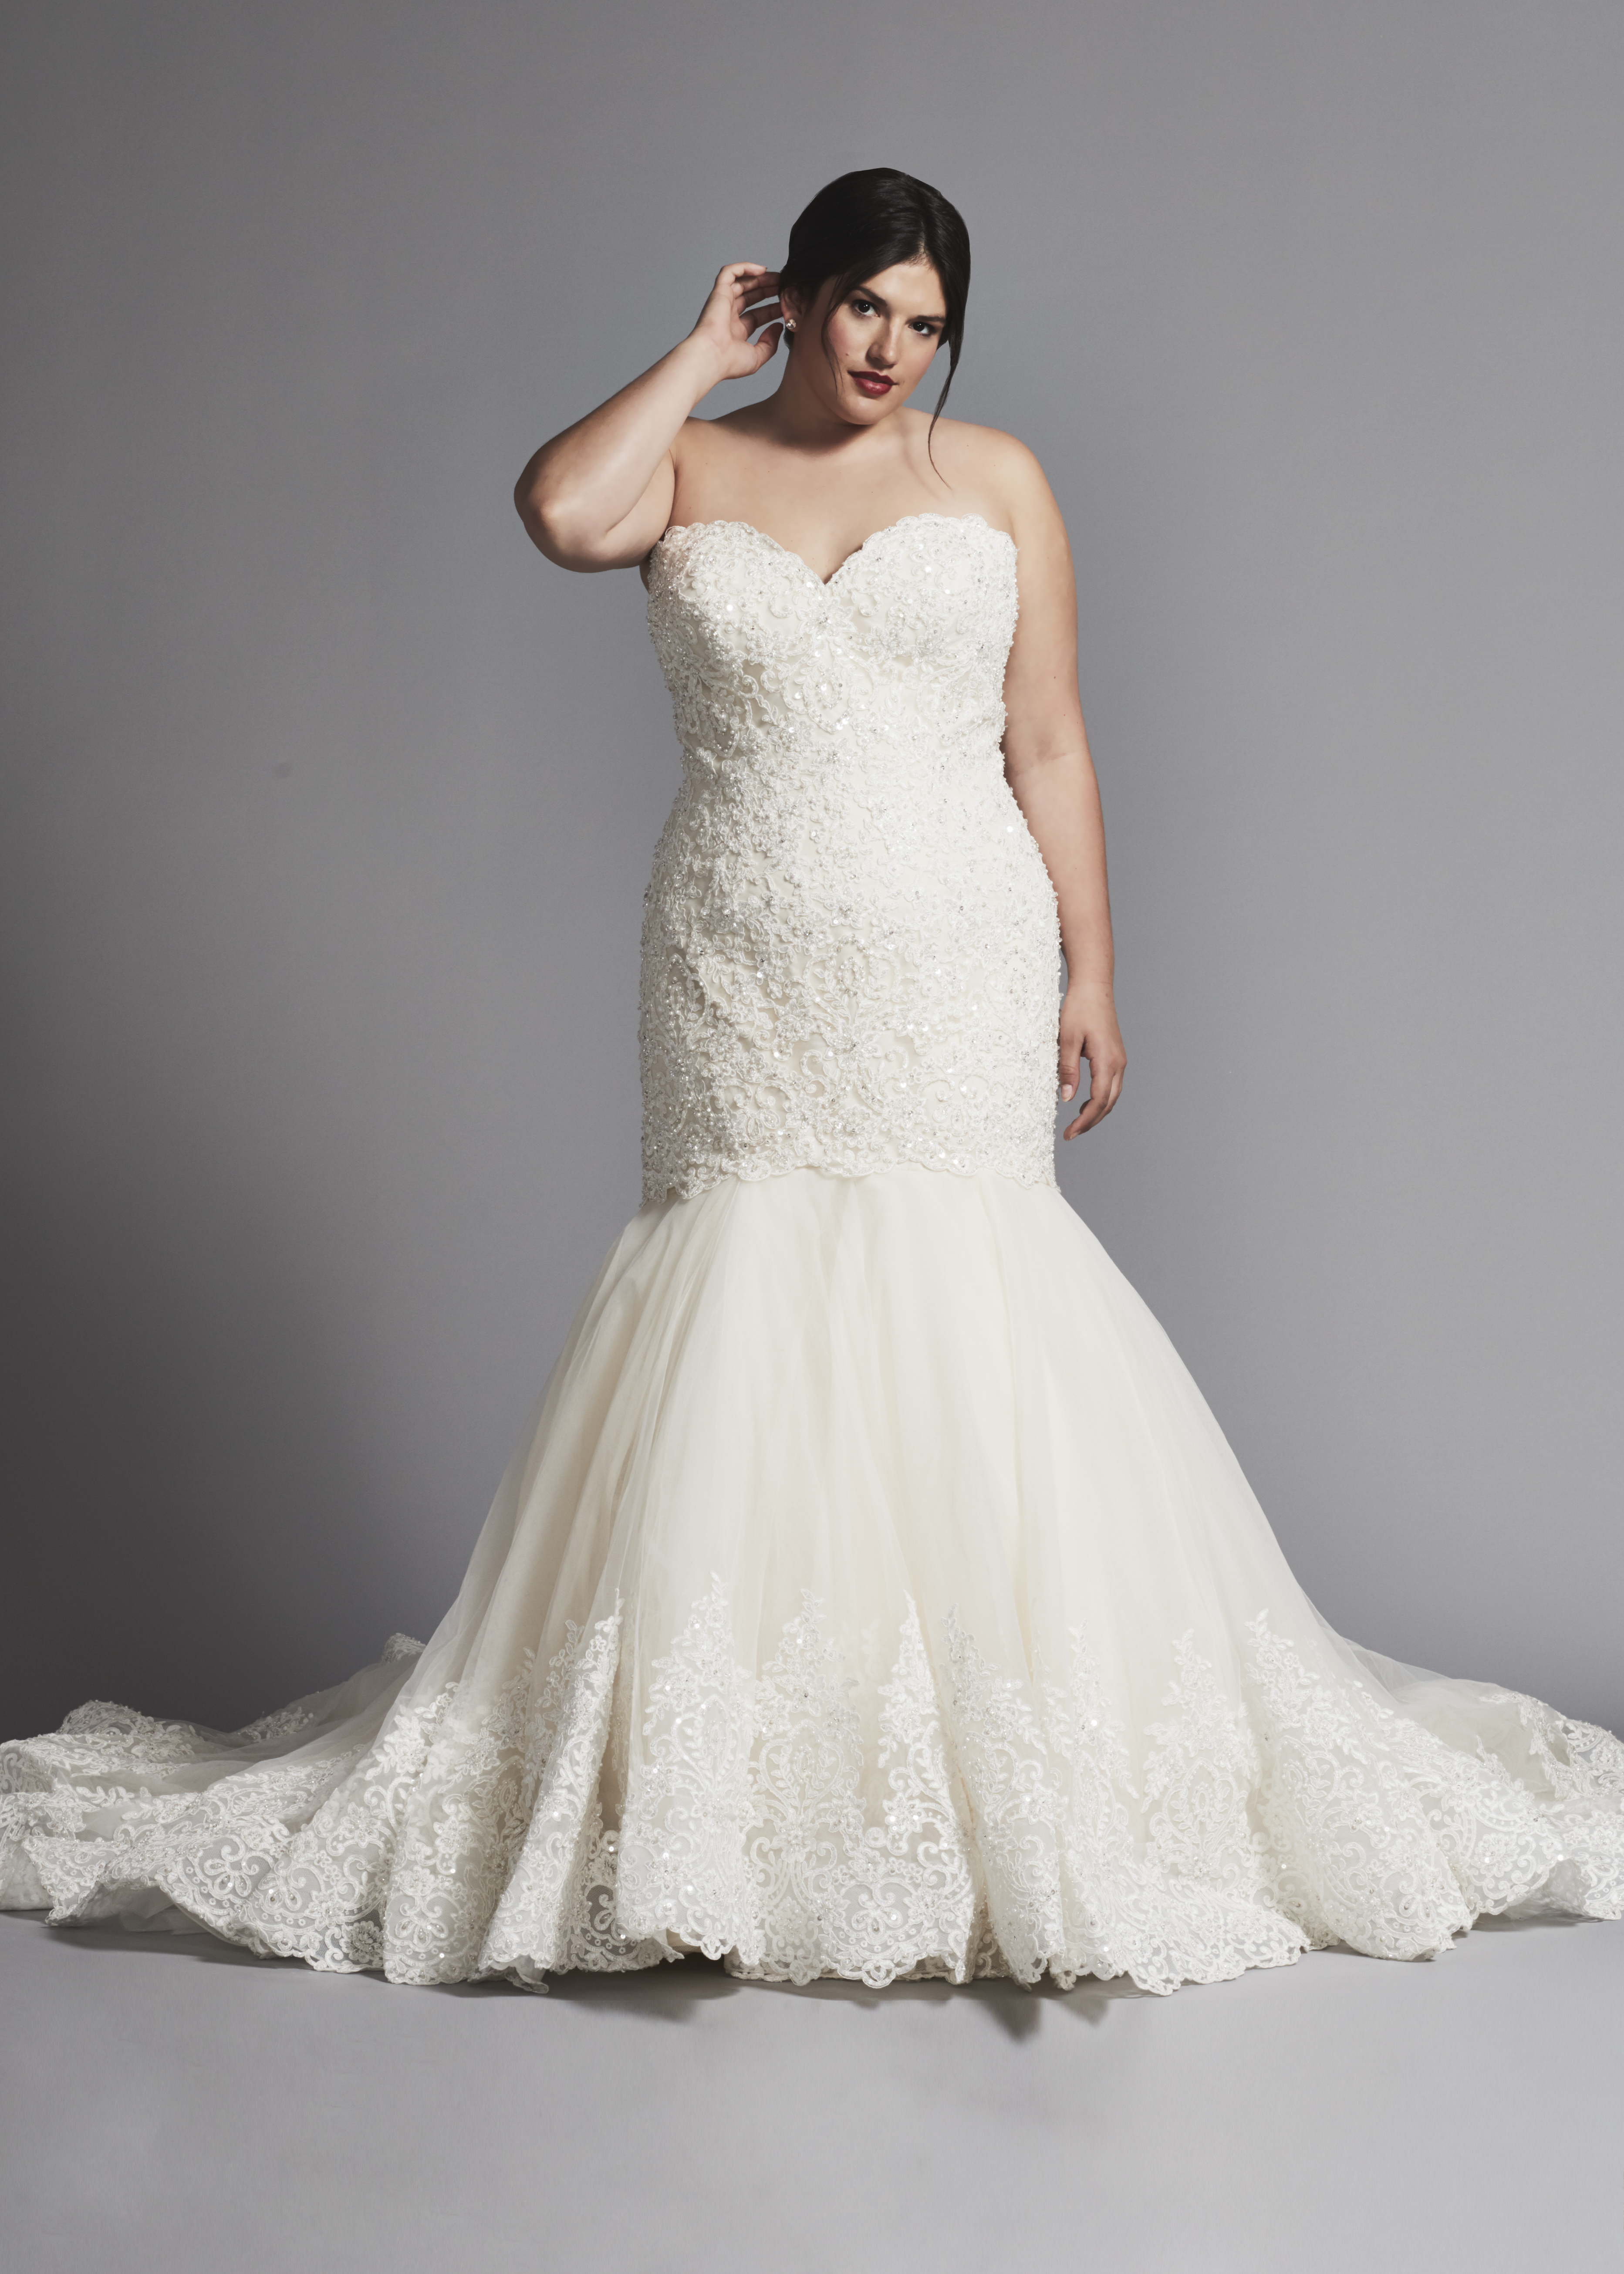 465f1a03ec62 Mermaid Wedding Dress With Beaded Lace Bodice And Tulle Skirt | Kleinfeld  Bridal